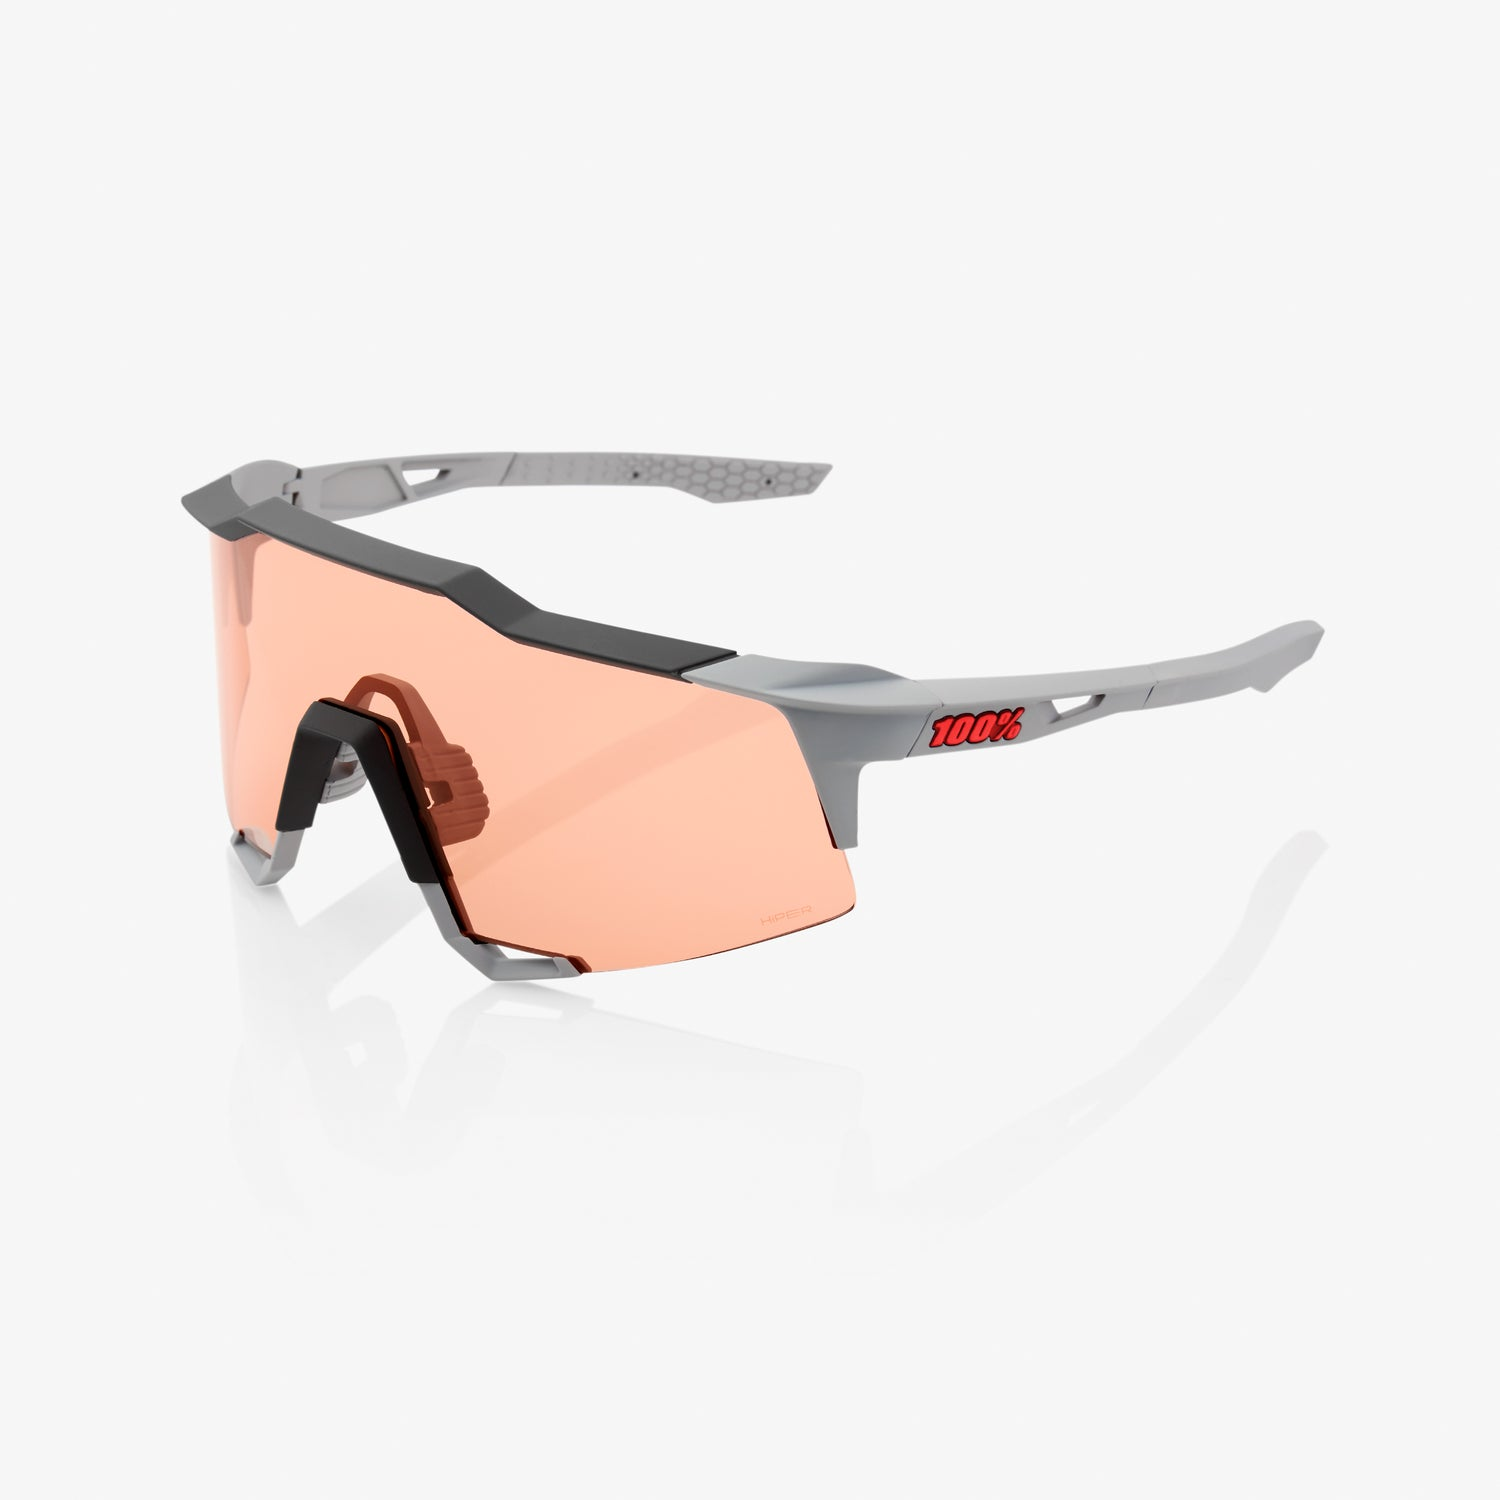 SPEEDCRAFT - Soft Tact Stone Grey - HiPER Coral Lens